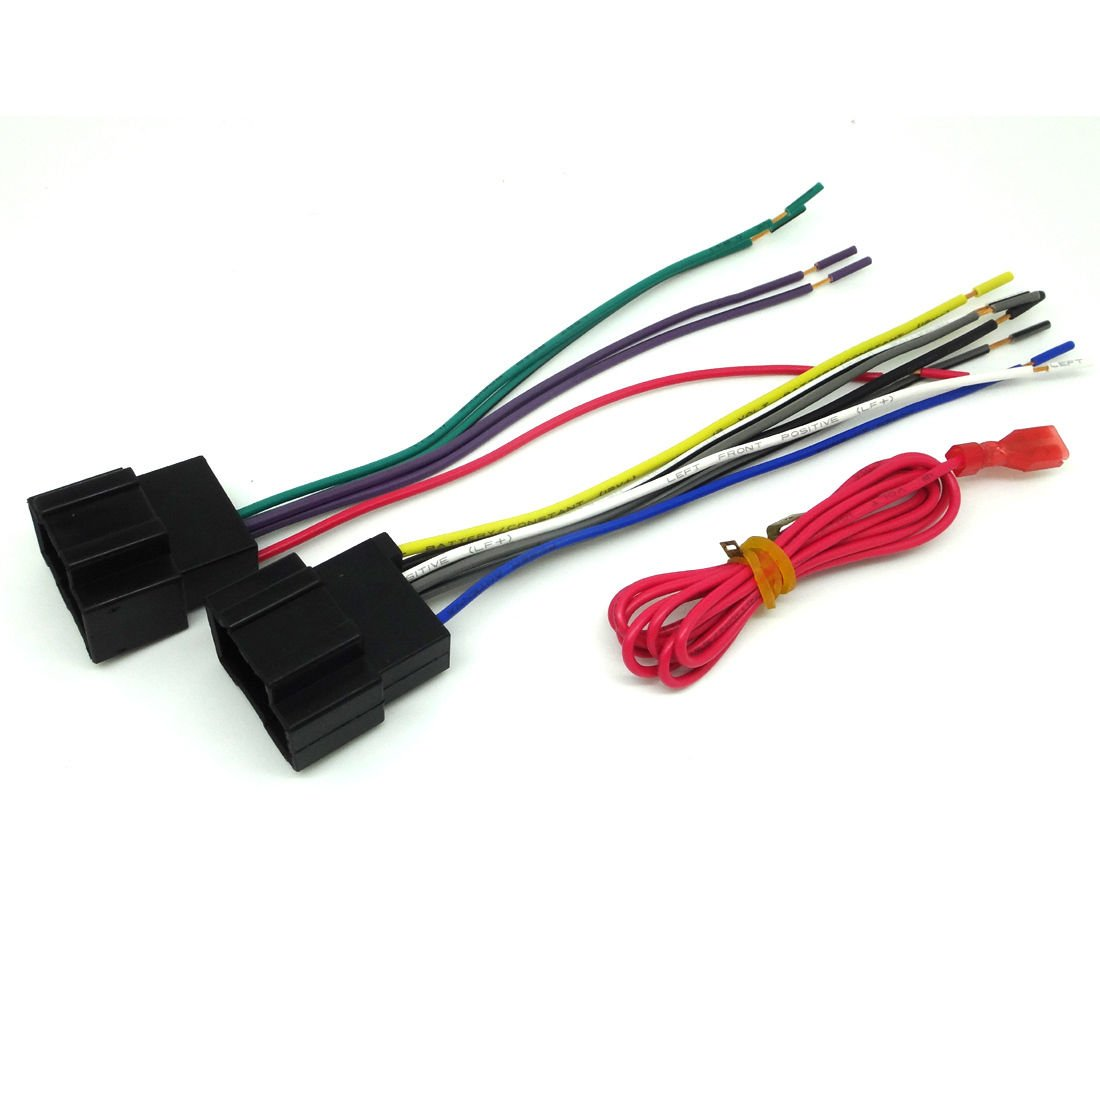 61nu0LRNVFL._SL1100_ amazon com gm car stereo cd player wiring harness wire wiring harness stereo at bayanpartner.co